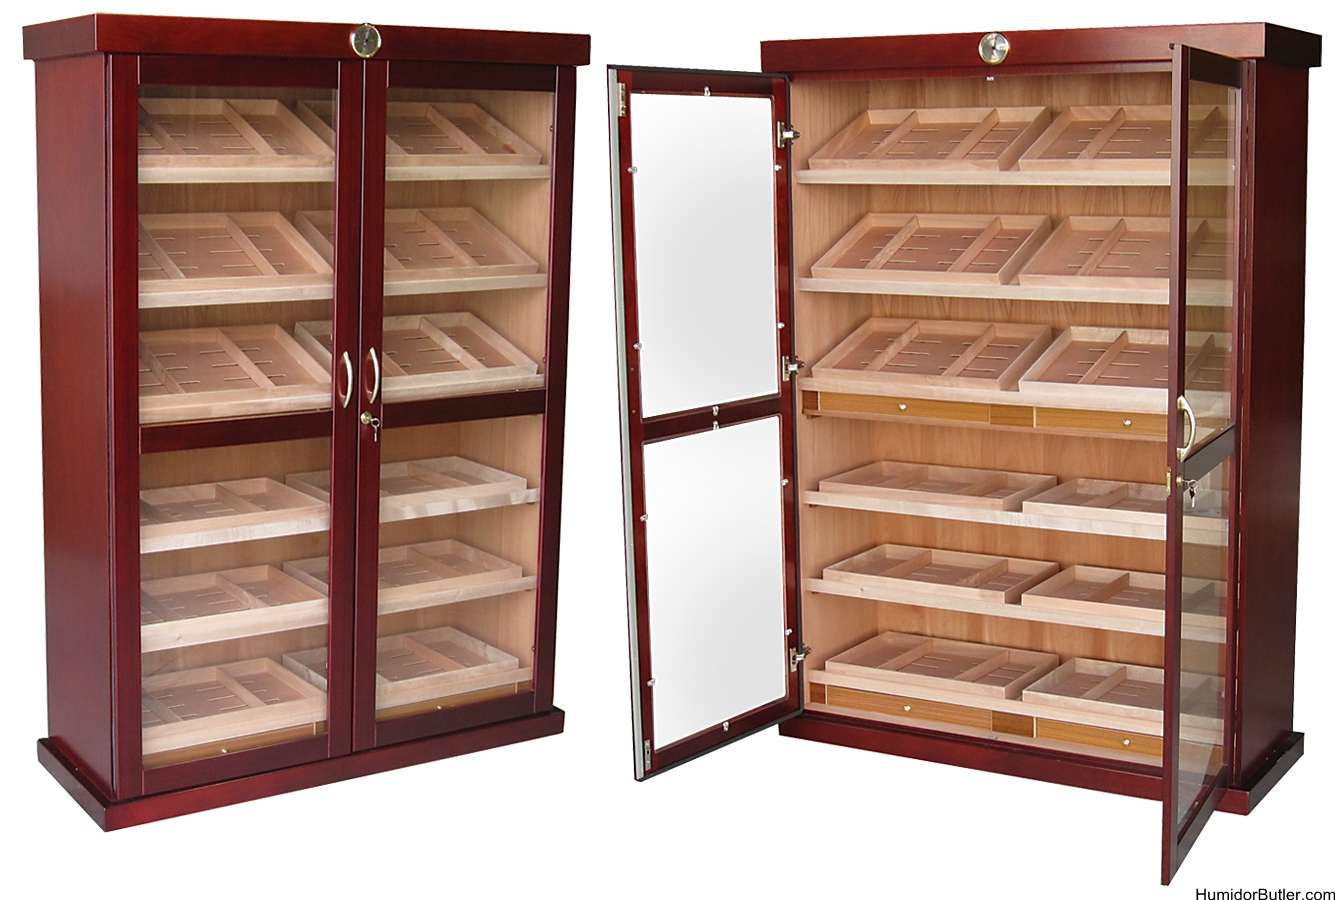 large wholesaler perfecto products for cigars cigar cc cherry wood humidors humidor cabinet